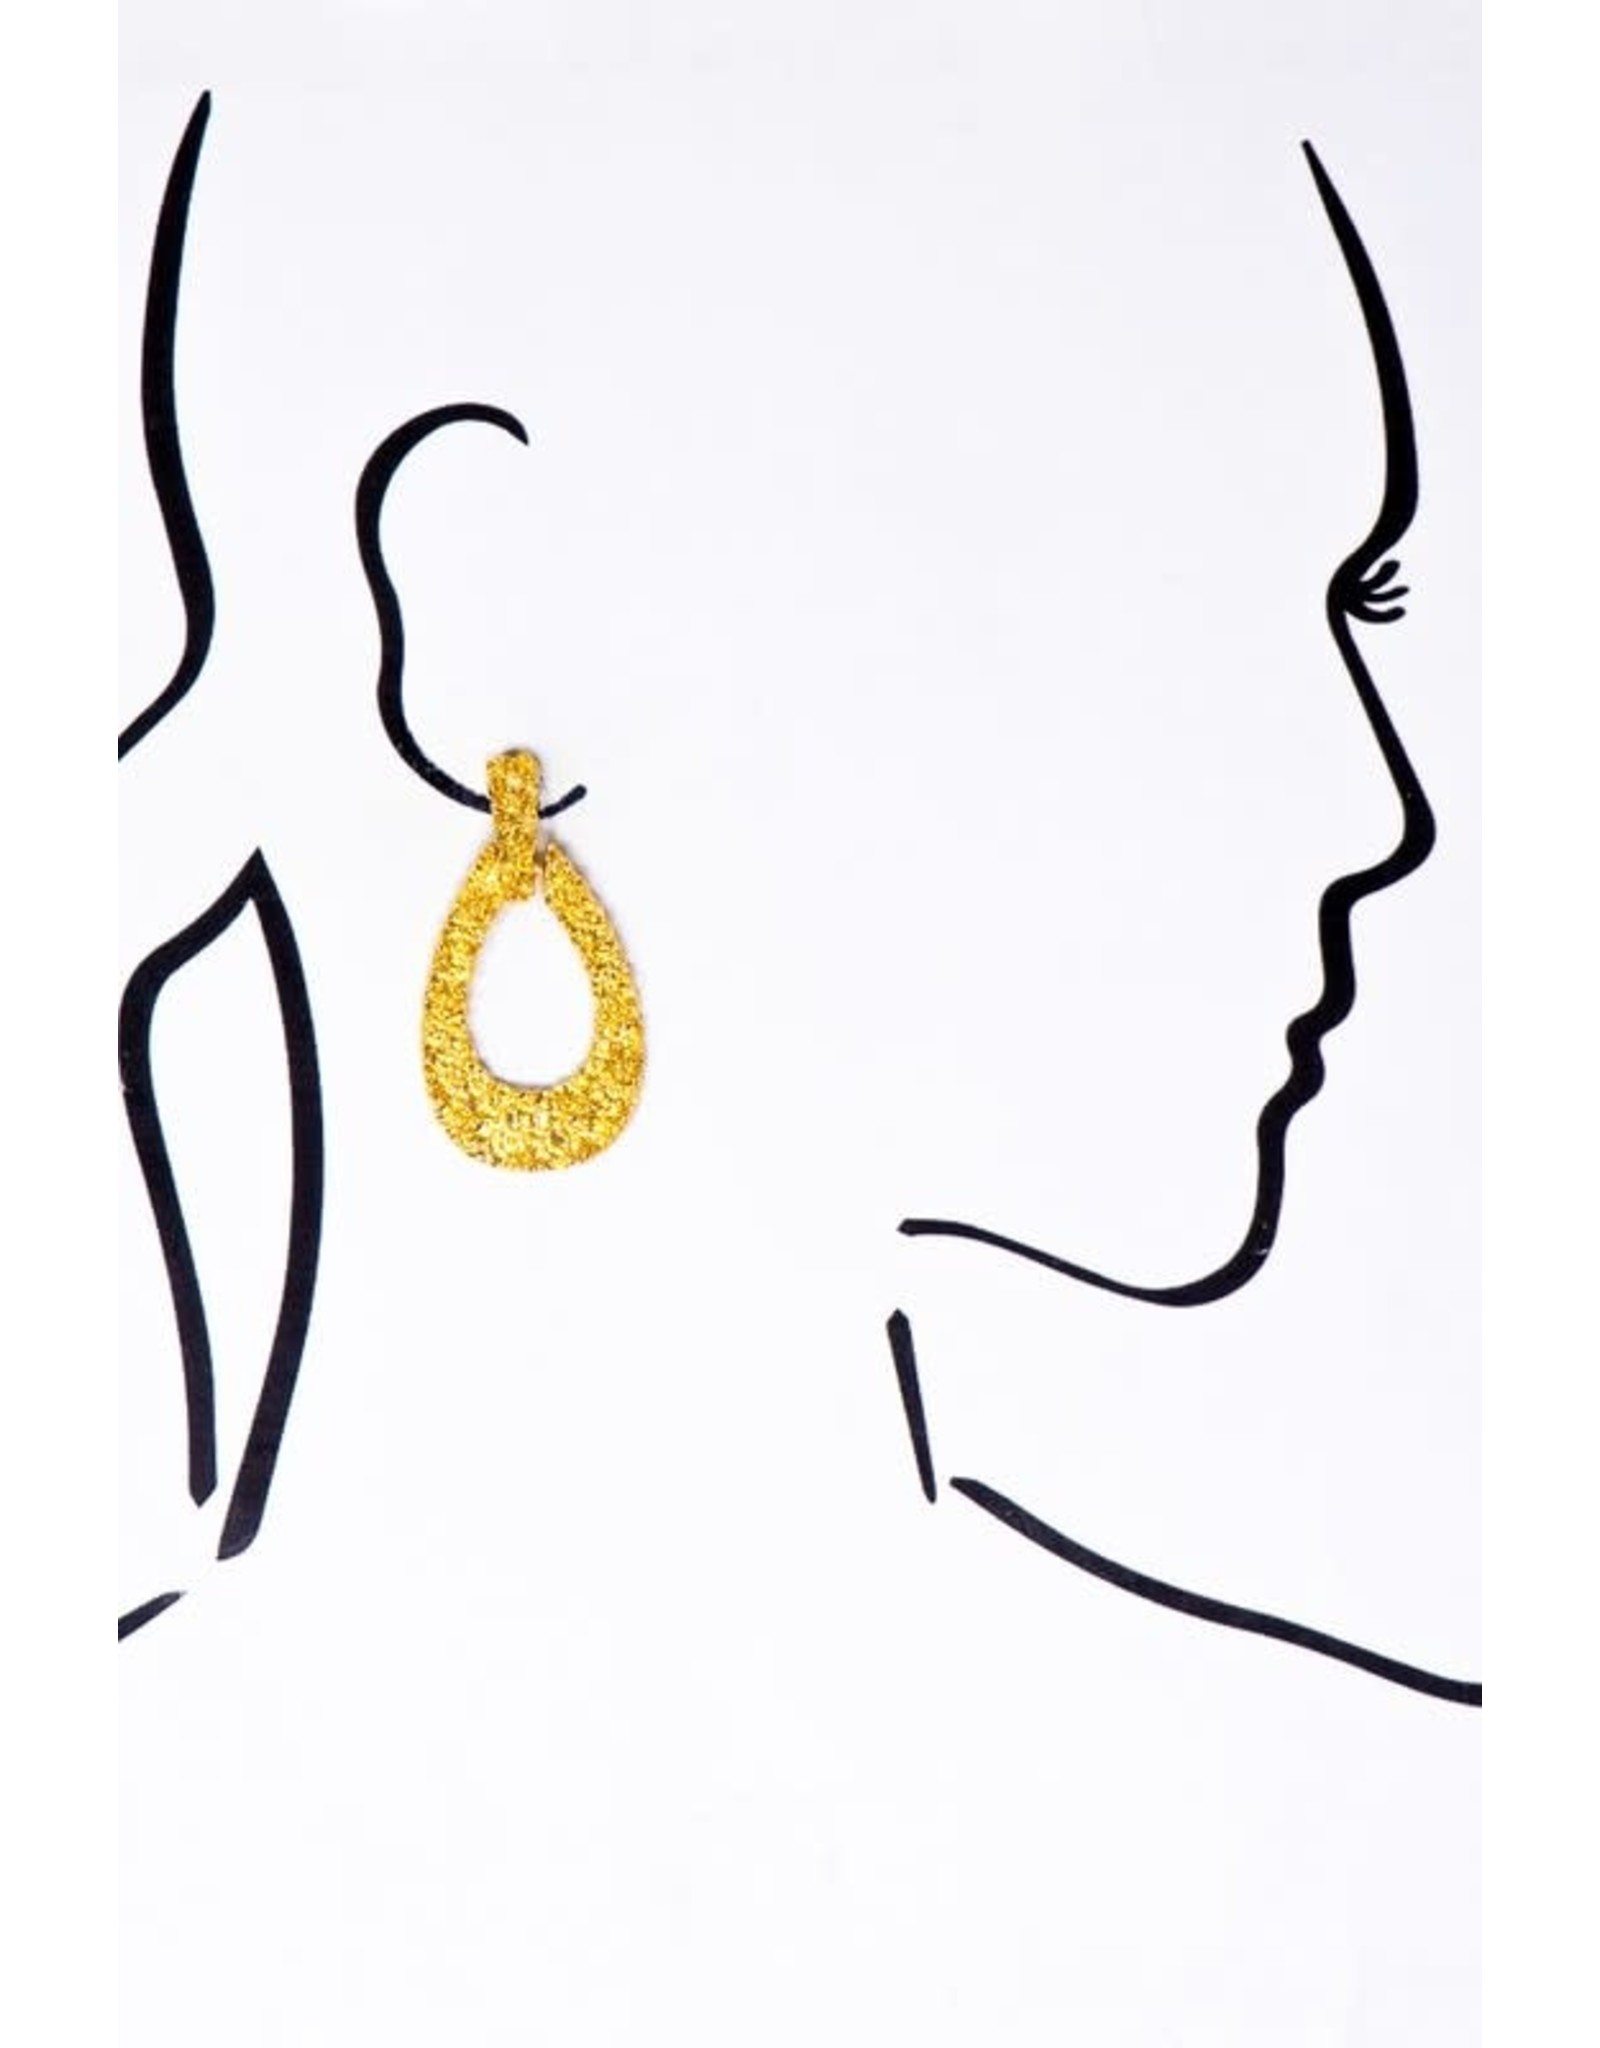 """Made Of Alloy Casting. Size: 1"""" X 2.0"""" Alloy Casting Textured Door Knocker Earrings In Gold Finish - Color: Gold"""